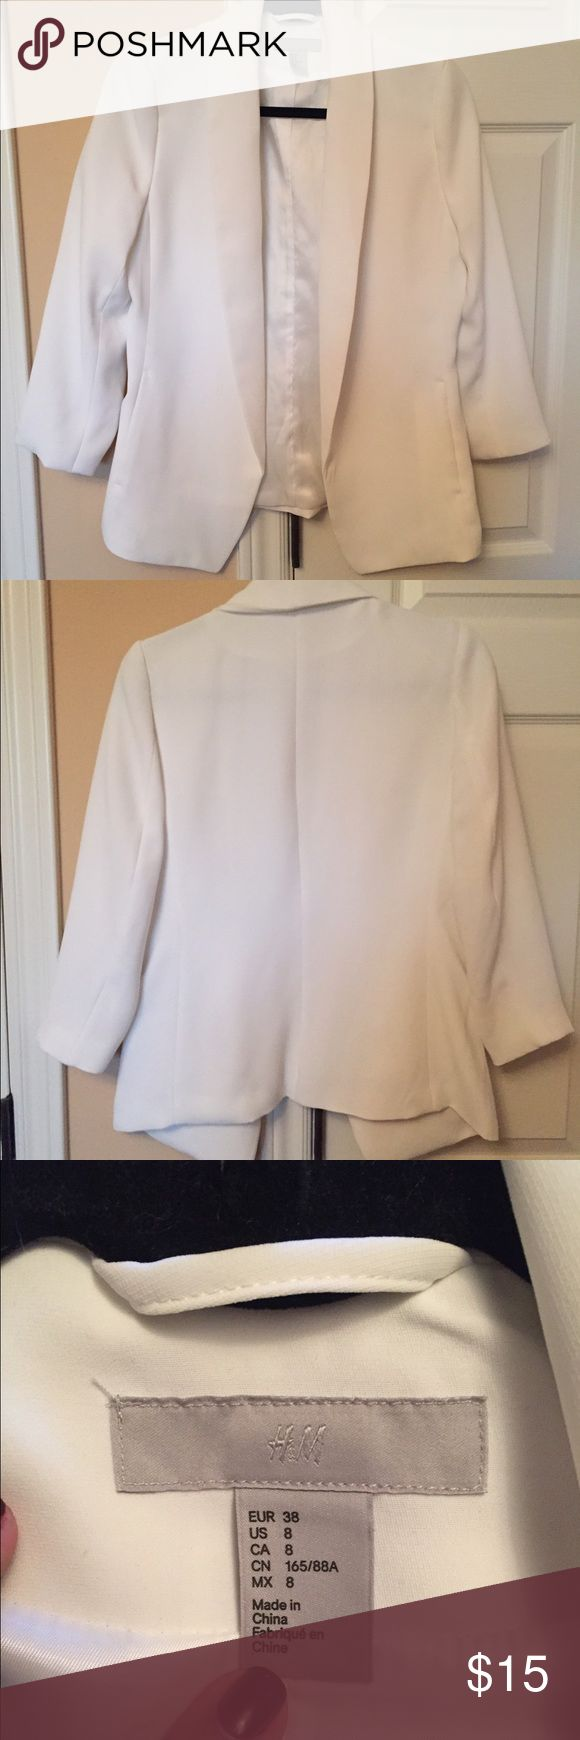 White blazer This white blazer is stunning and pulls together any outfit. It is fitted in all the right places and useable pockets! H&M Jackets & Coats Blazers